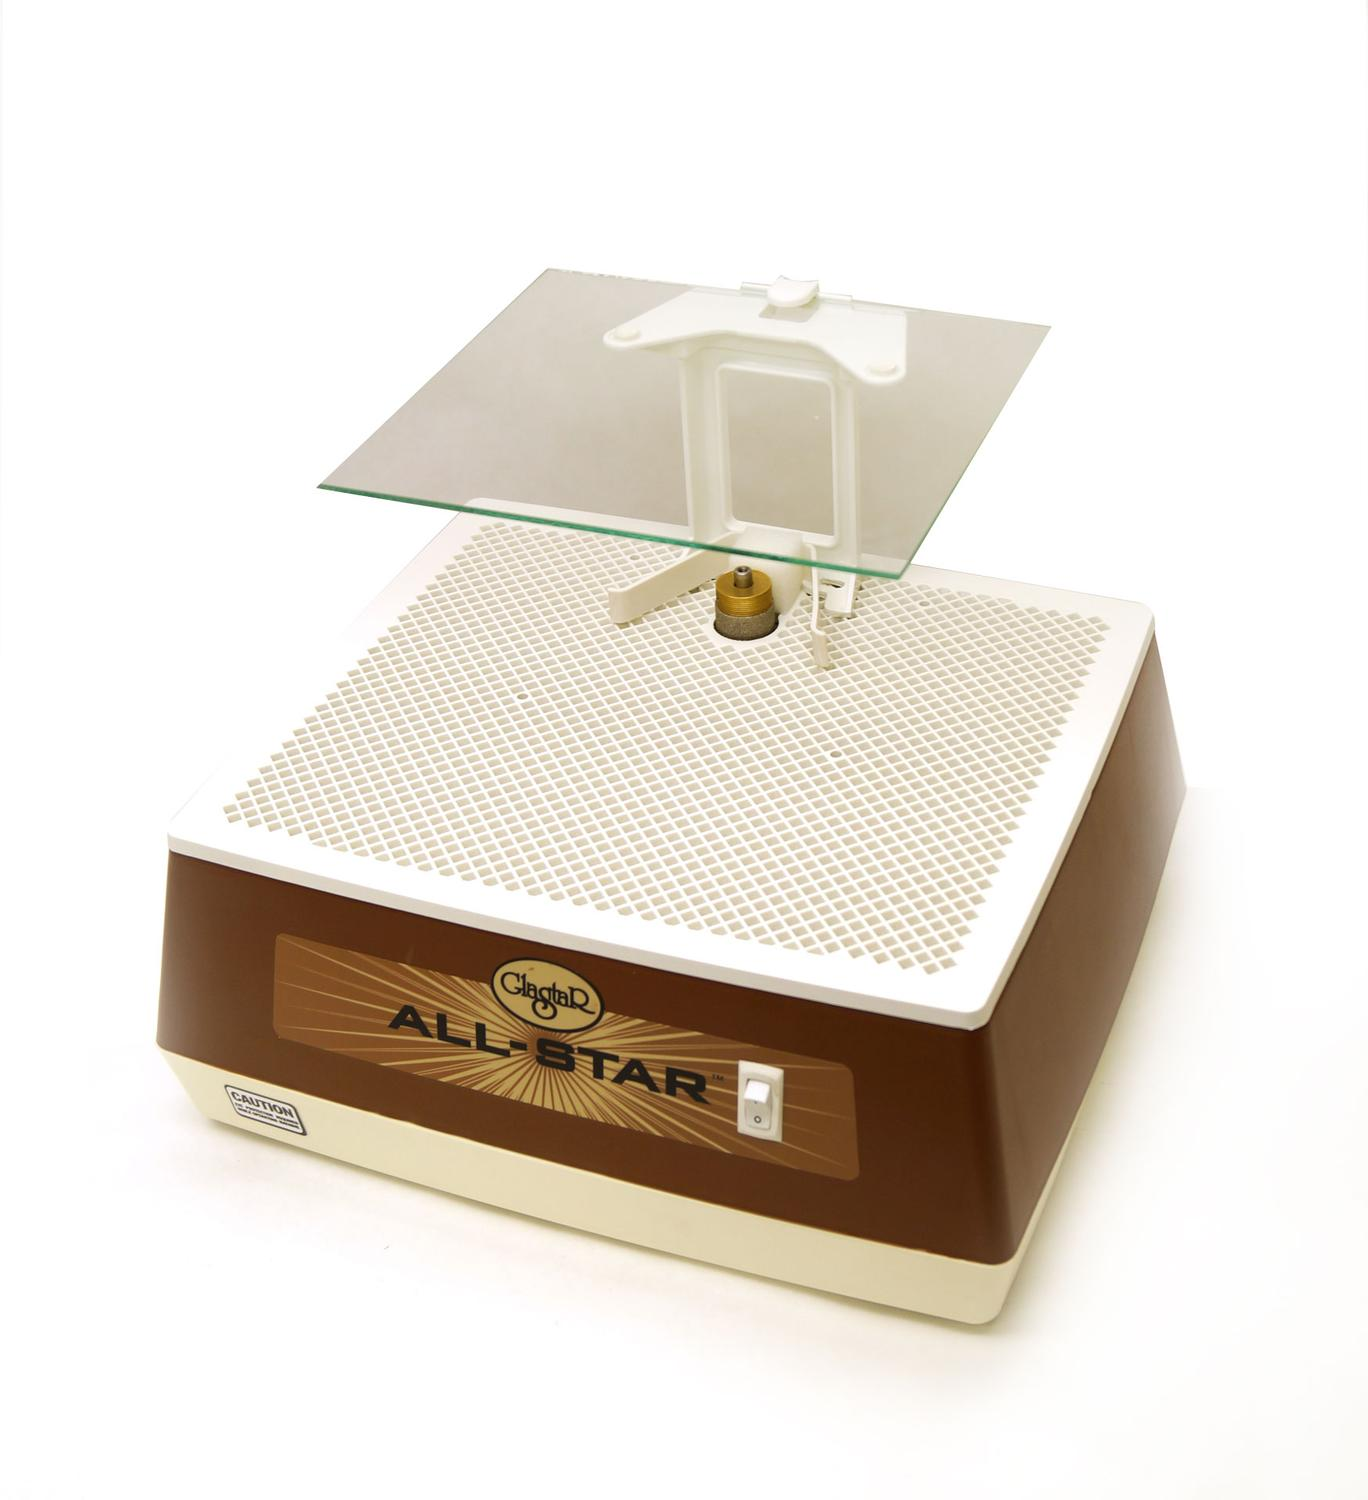 Glastar All Star G8 Grinder